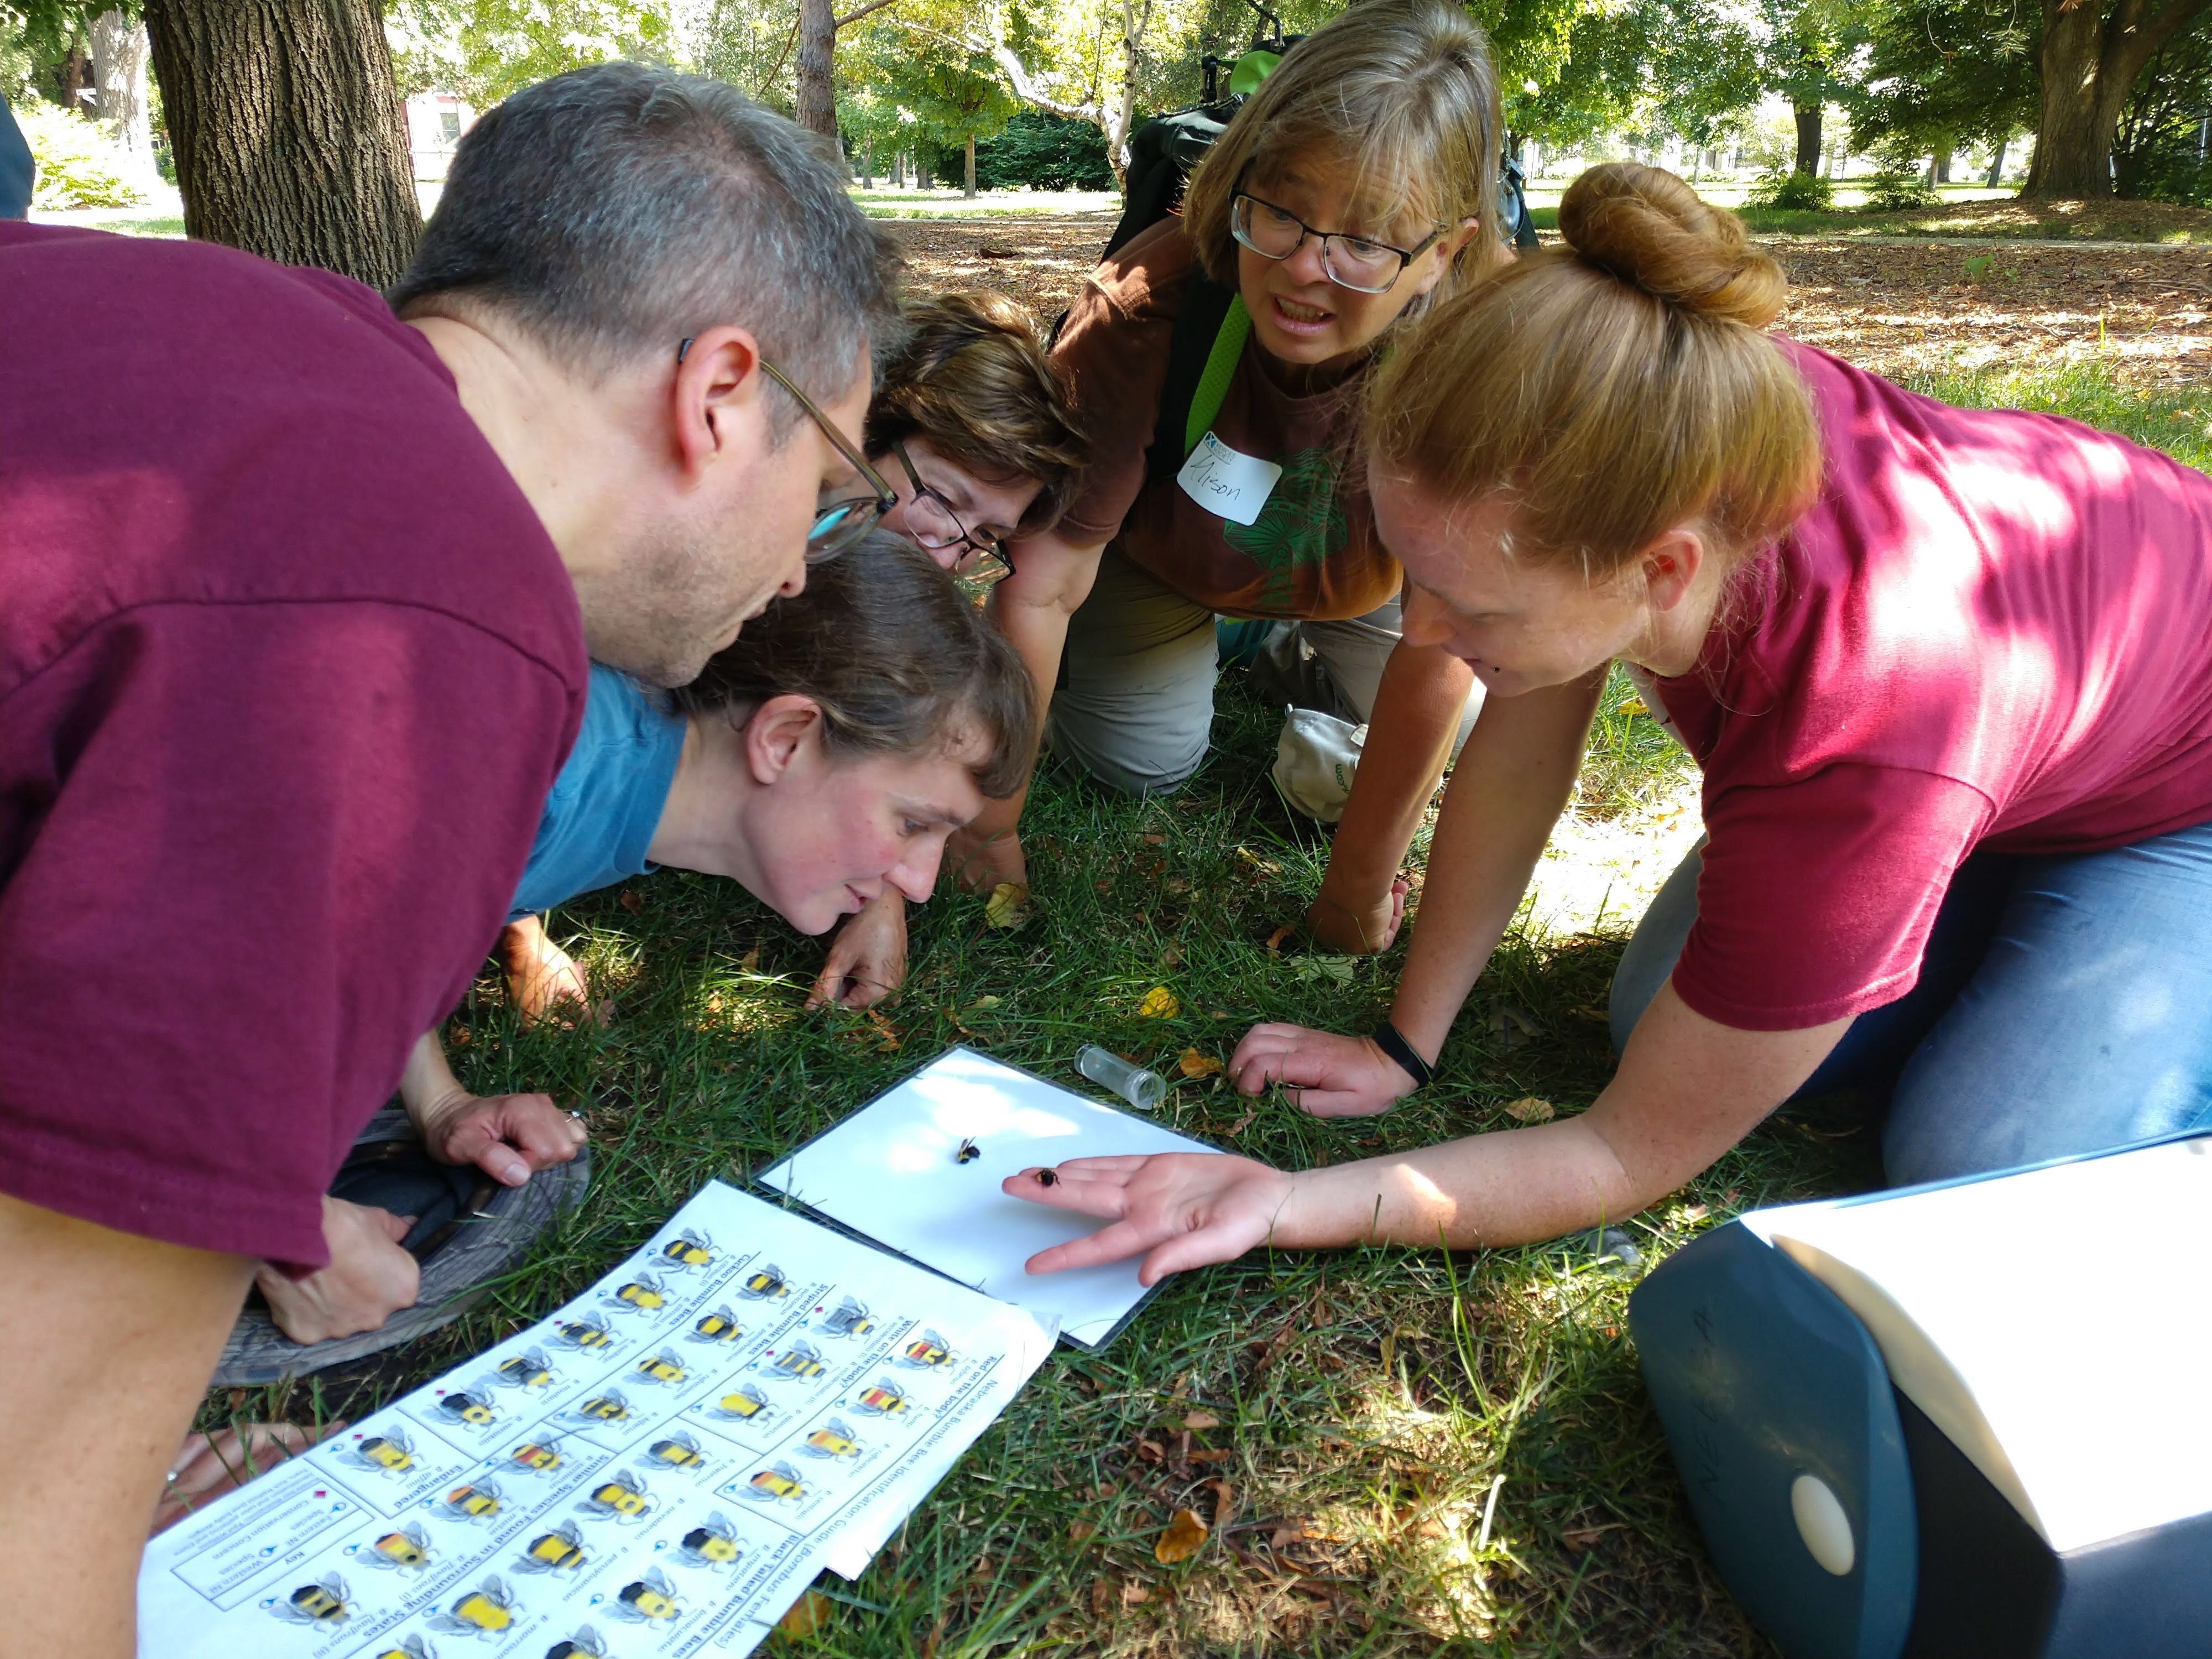 A group of people seated on the grass lean in to look at a small plastic vial on the ground, next to a sheet of diagrams for bee identification.